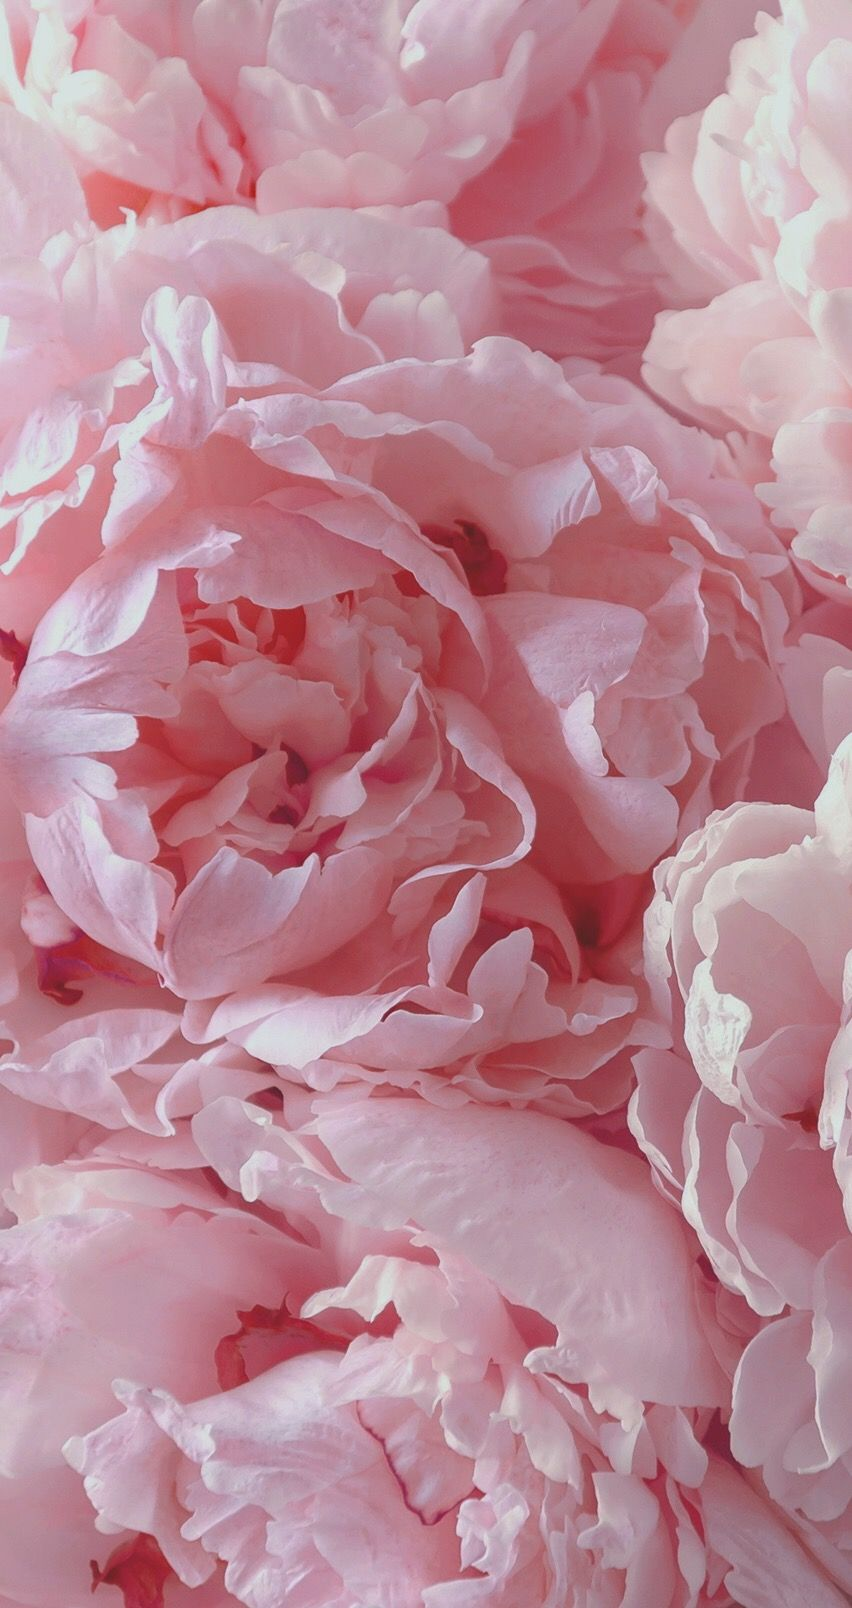 Beauty Full Soft Pink Peonies Colourinspiration Pinkpeonies Colorinspiration Peony Wallpaper Pink Wallpaper Iphone Beautiful Flowers Wallpapers